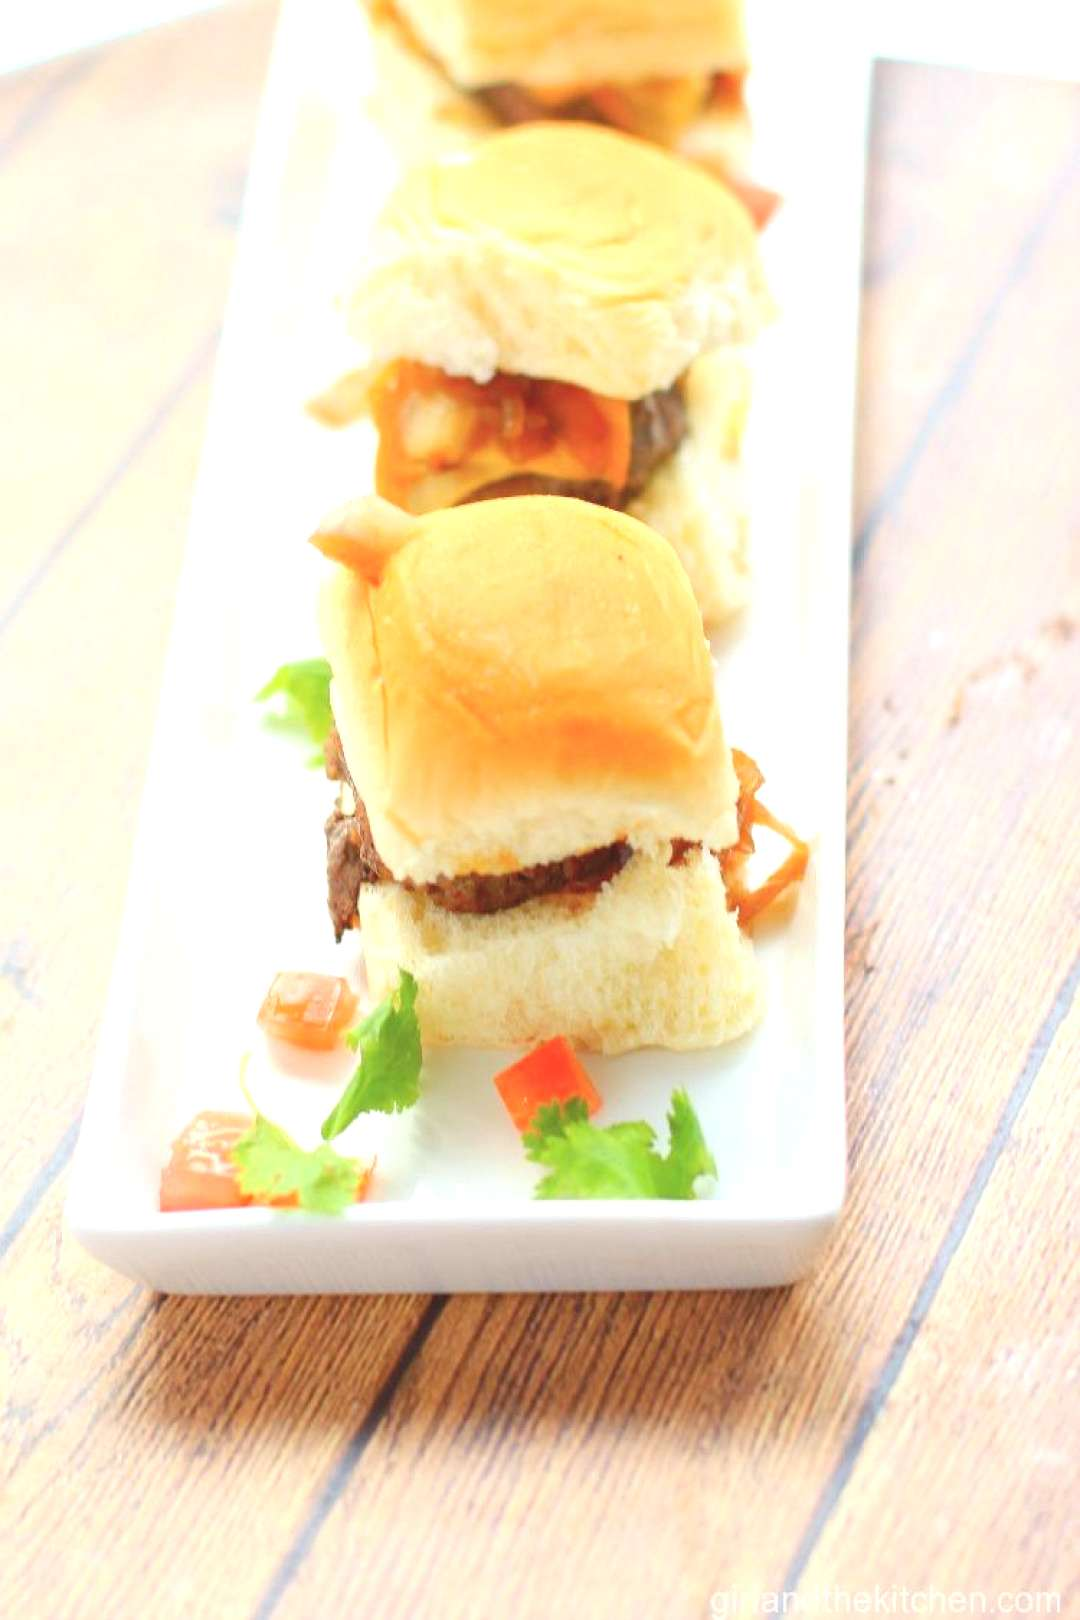 Omaha Steaks...Bison Sliders with Chipotle Aioli and Caramelized Onions - Girl and the Kitche... Om